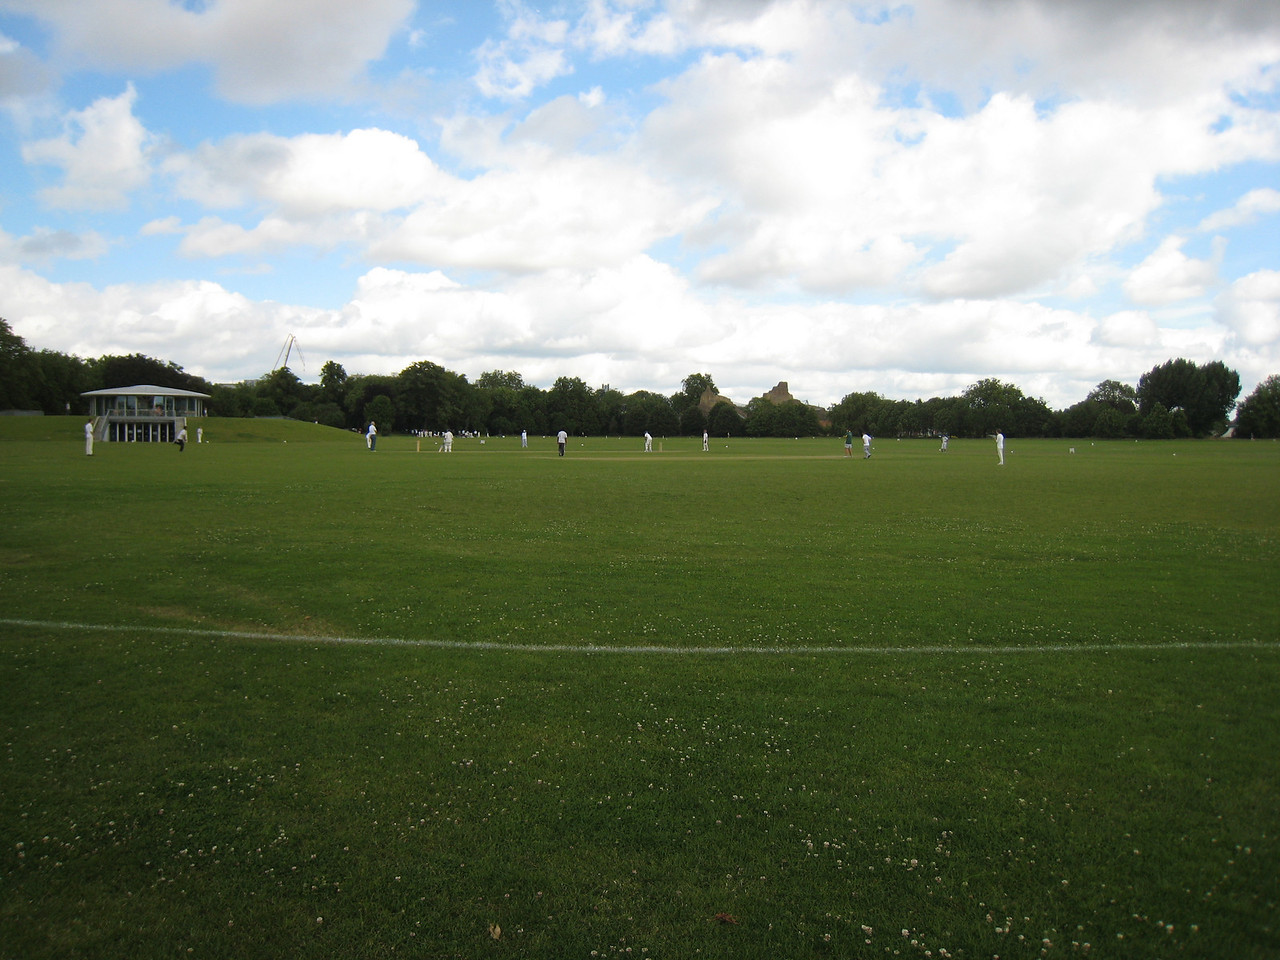 A cricket match in Regent's Park